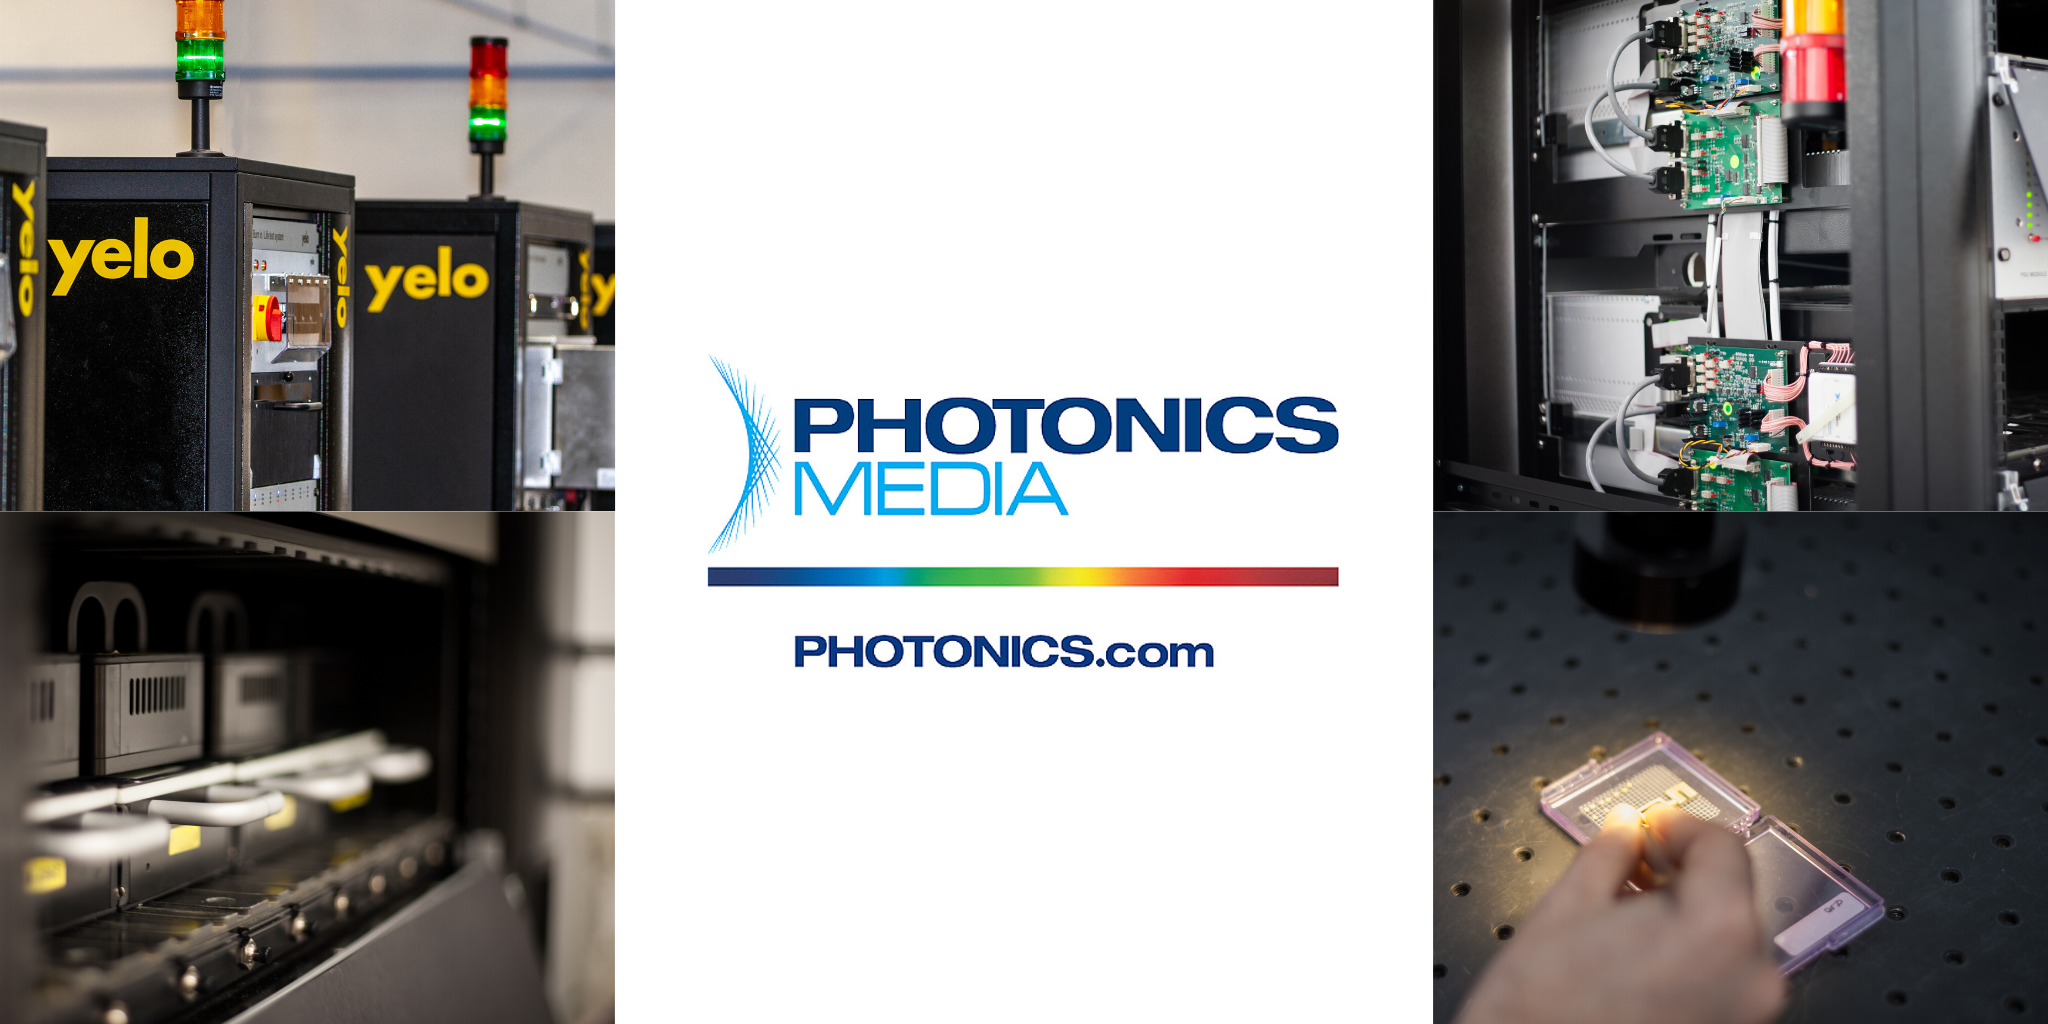 Yelo Extends Advertising Deal with Photonics Media